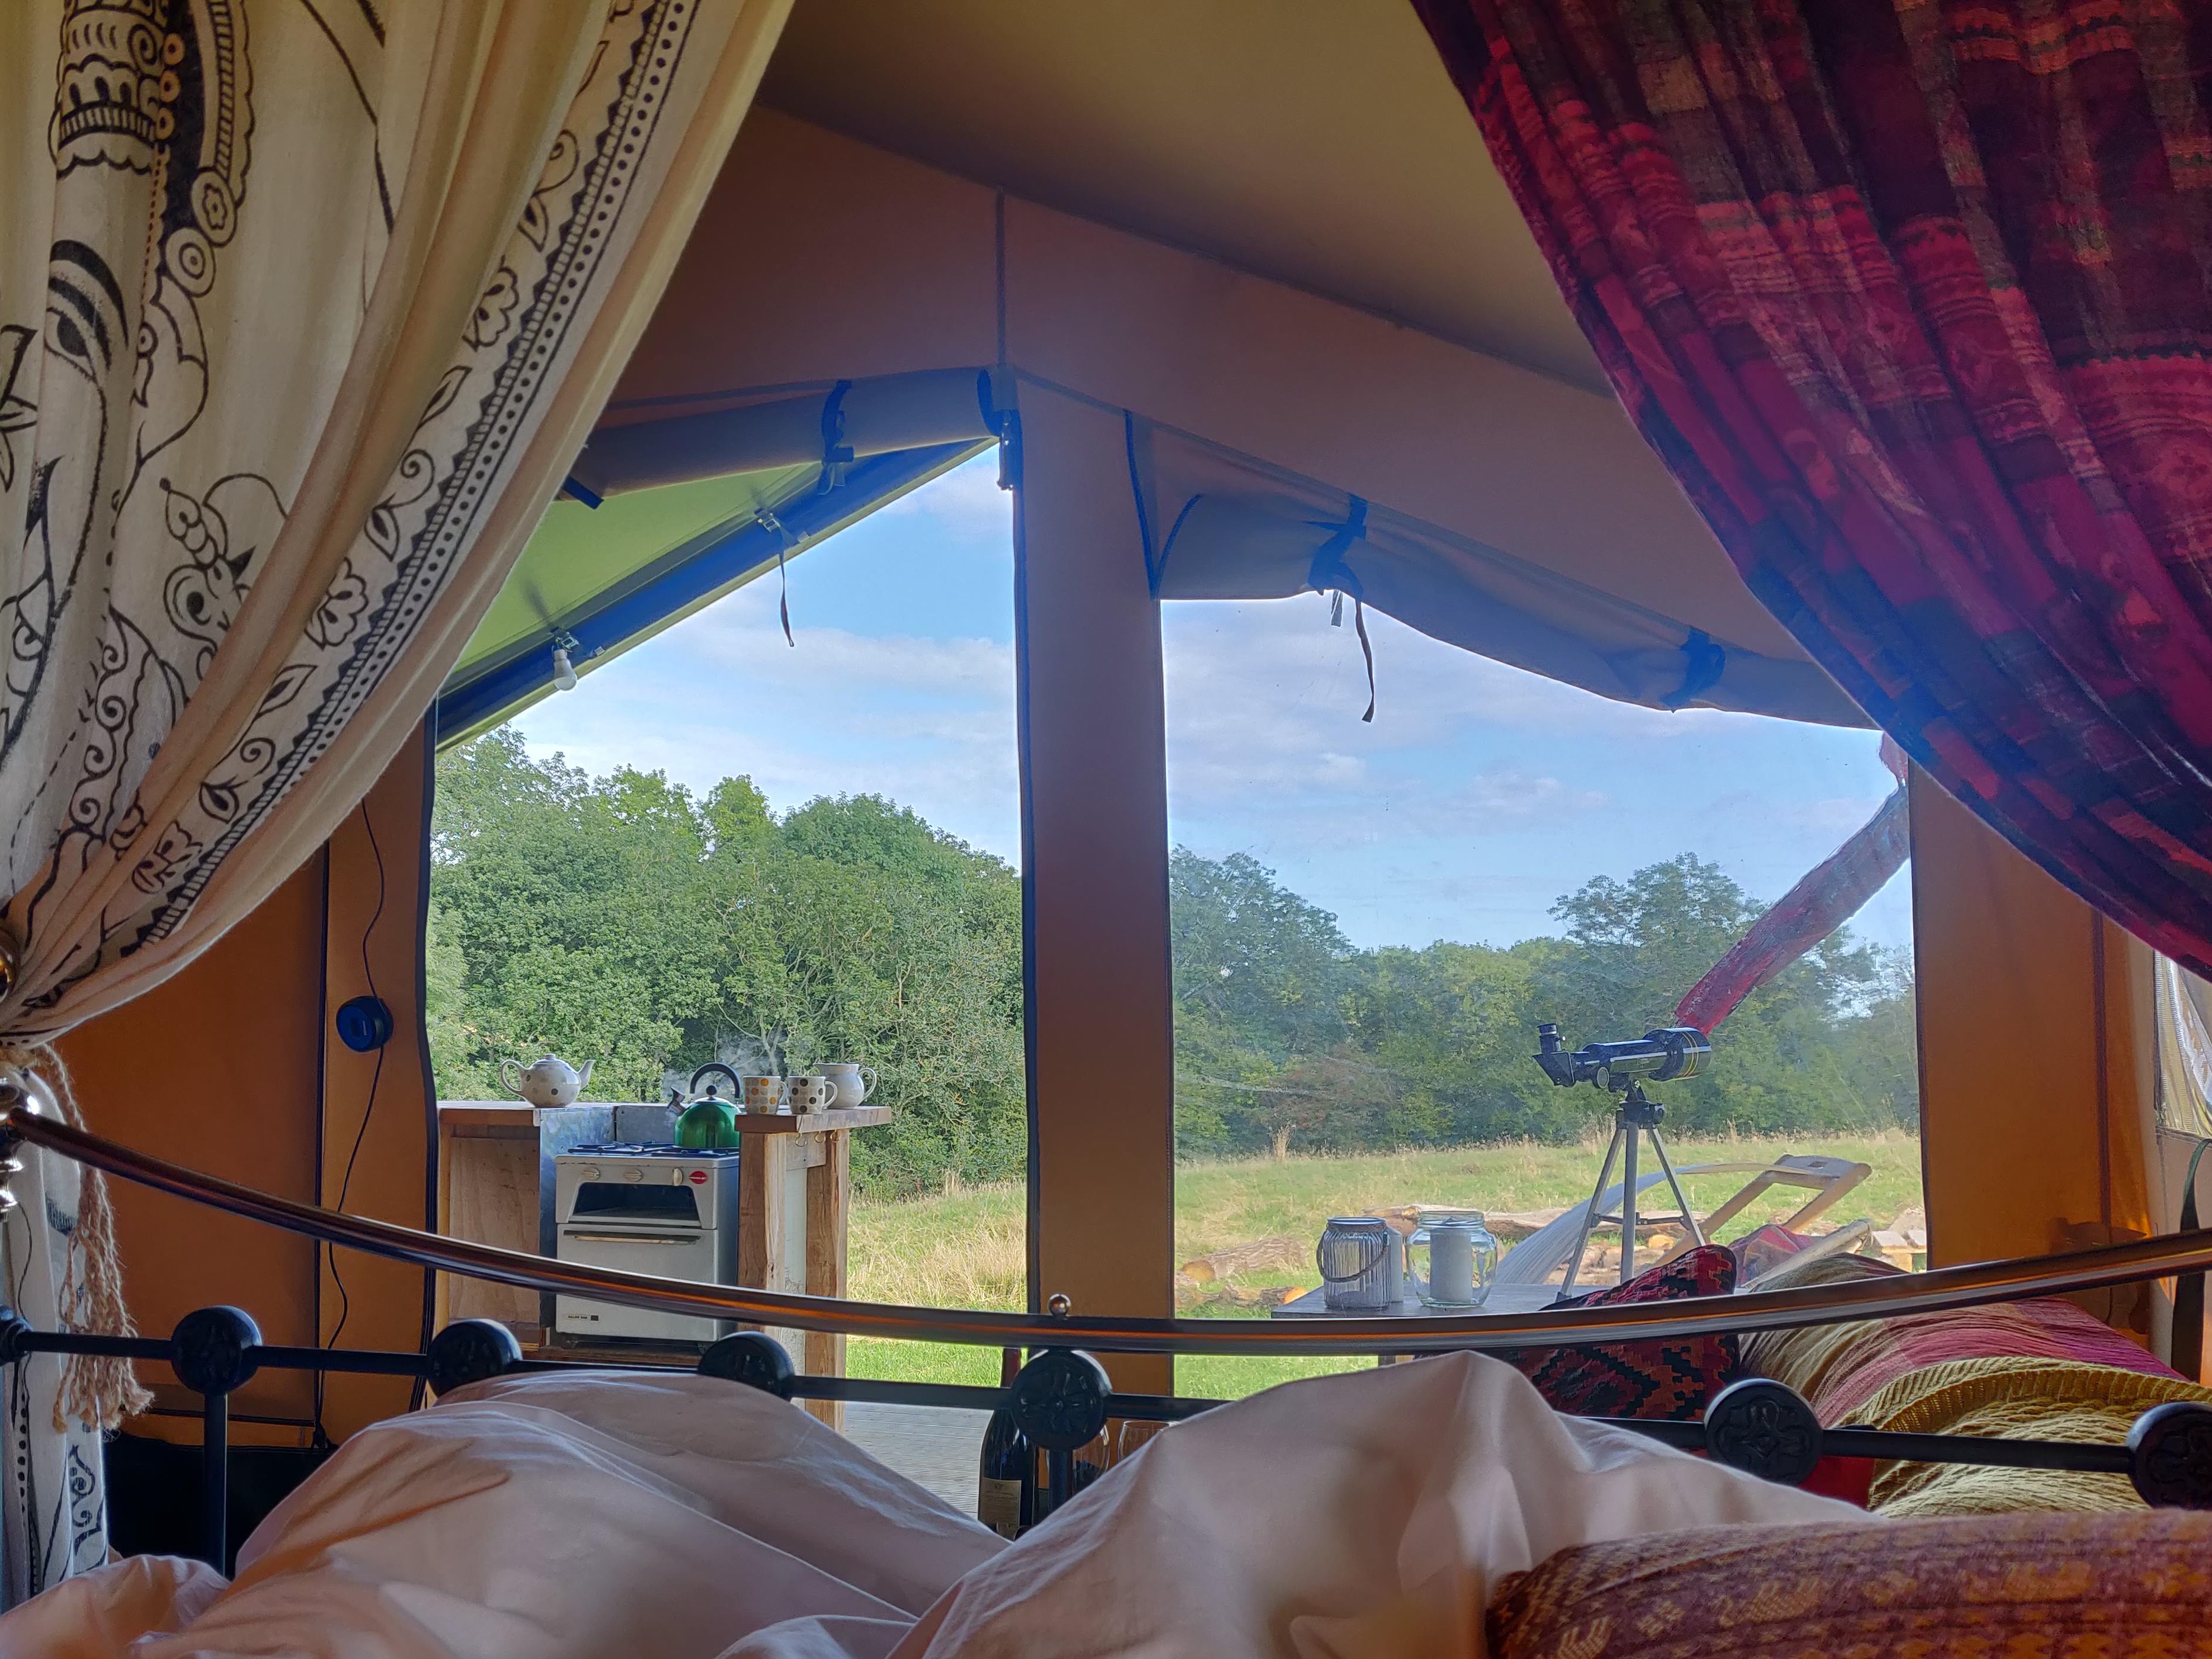 The view from the bed in Northern Skies